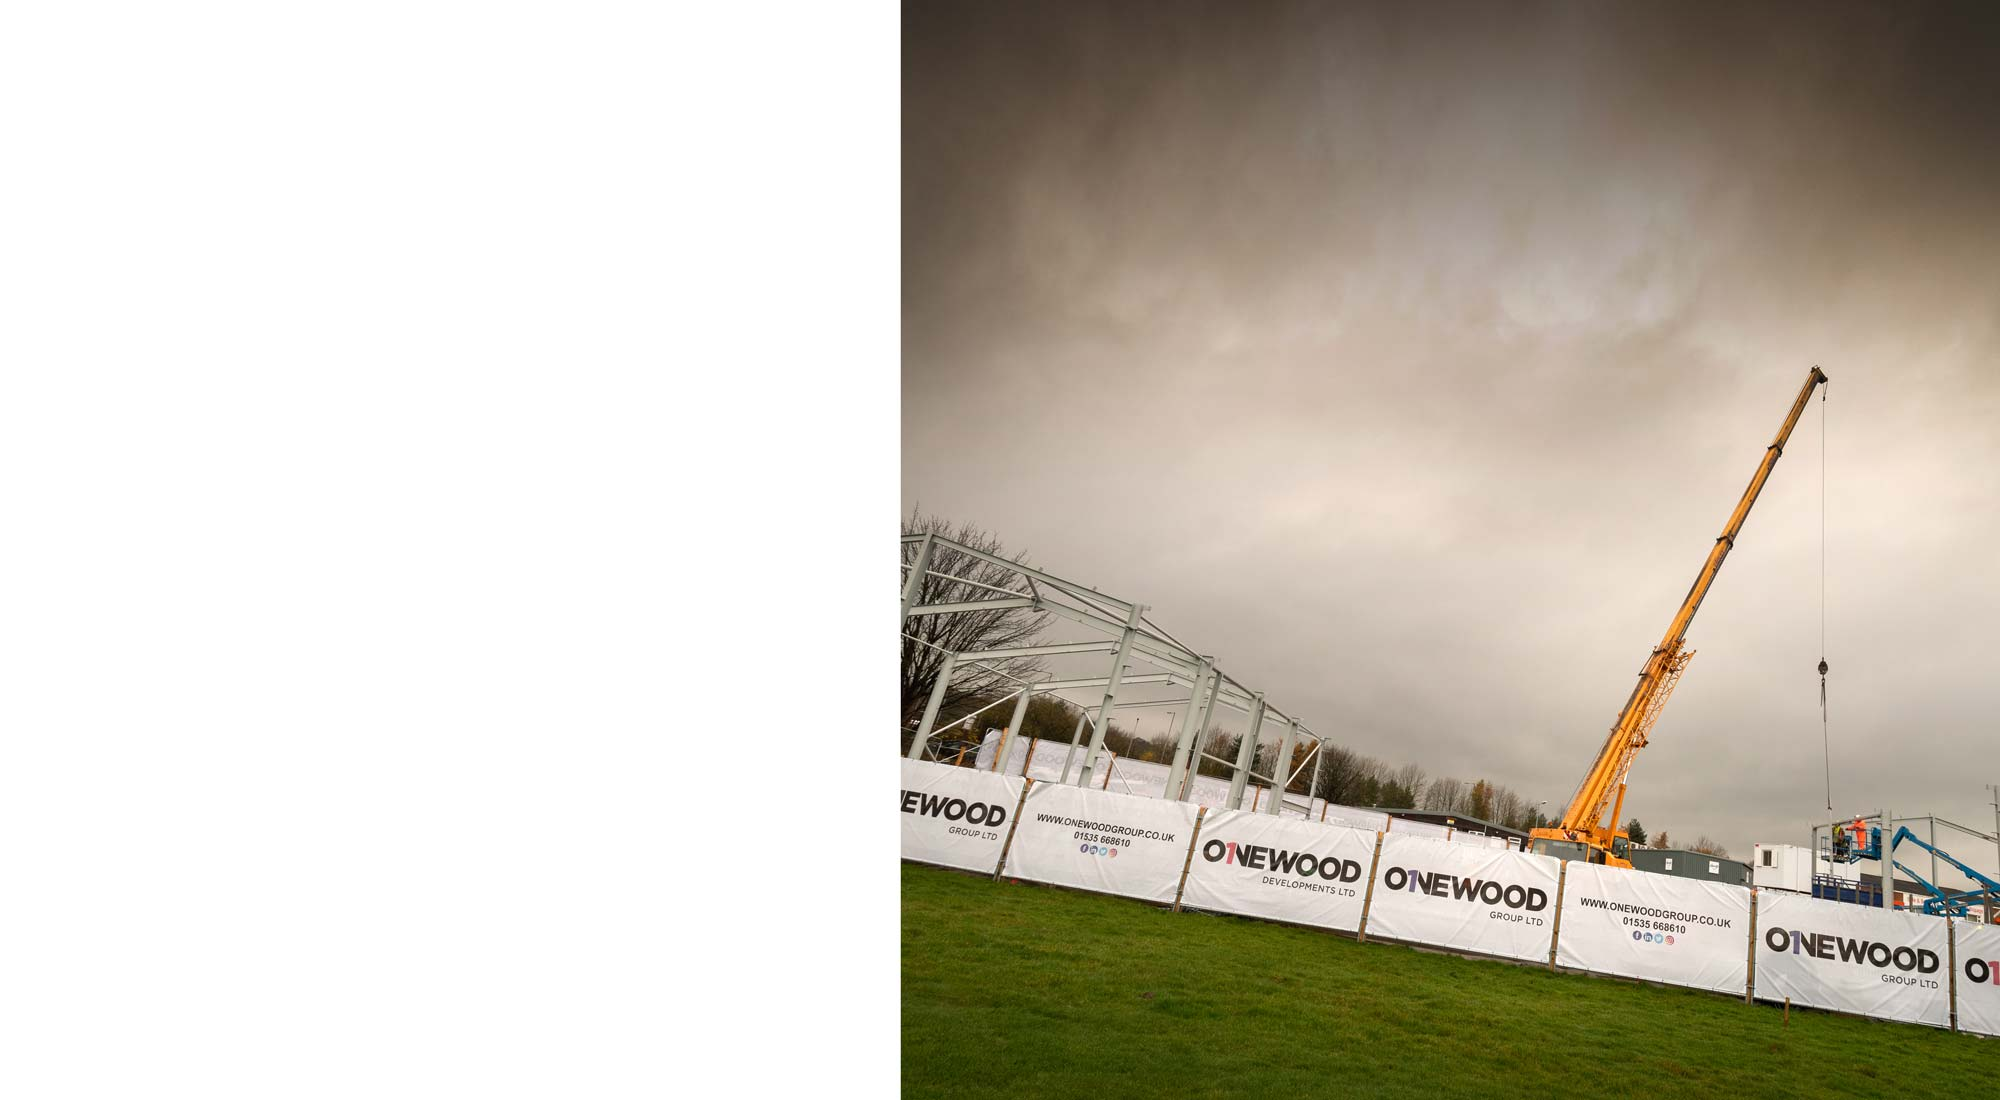 Onewood-Acquisition-Construction-Possession-Yorkshire-Banner-2